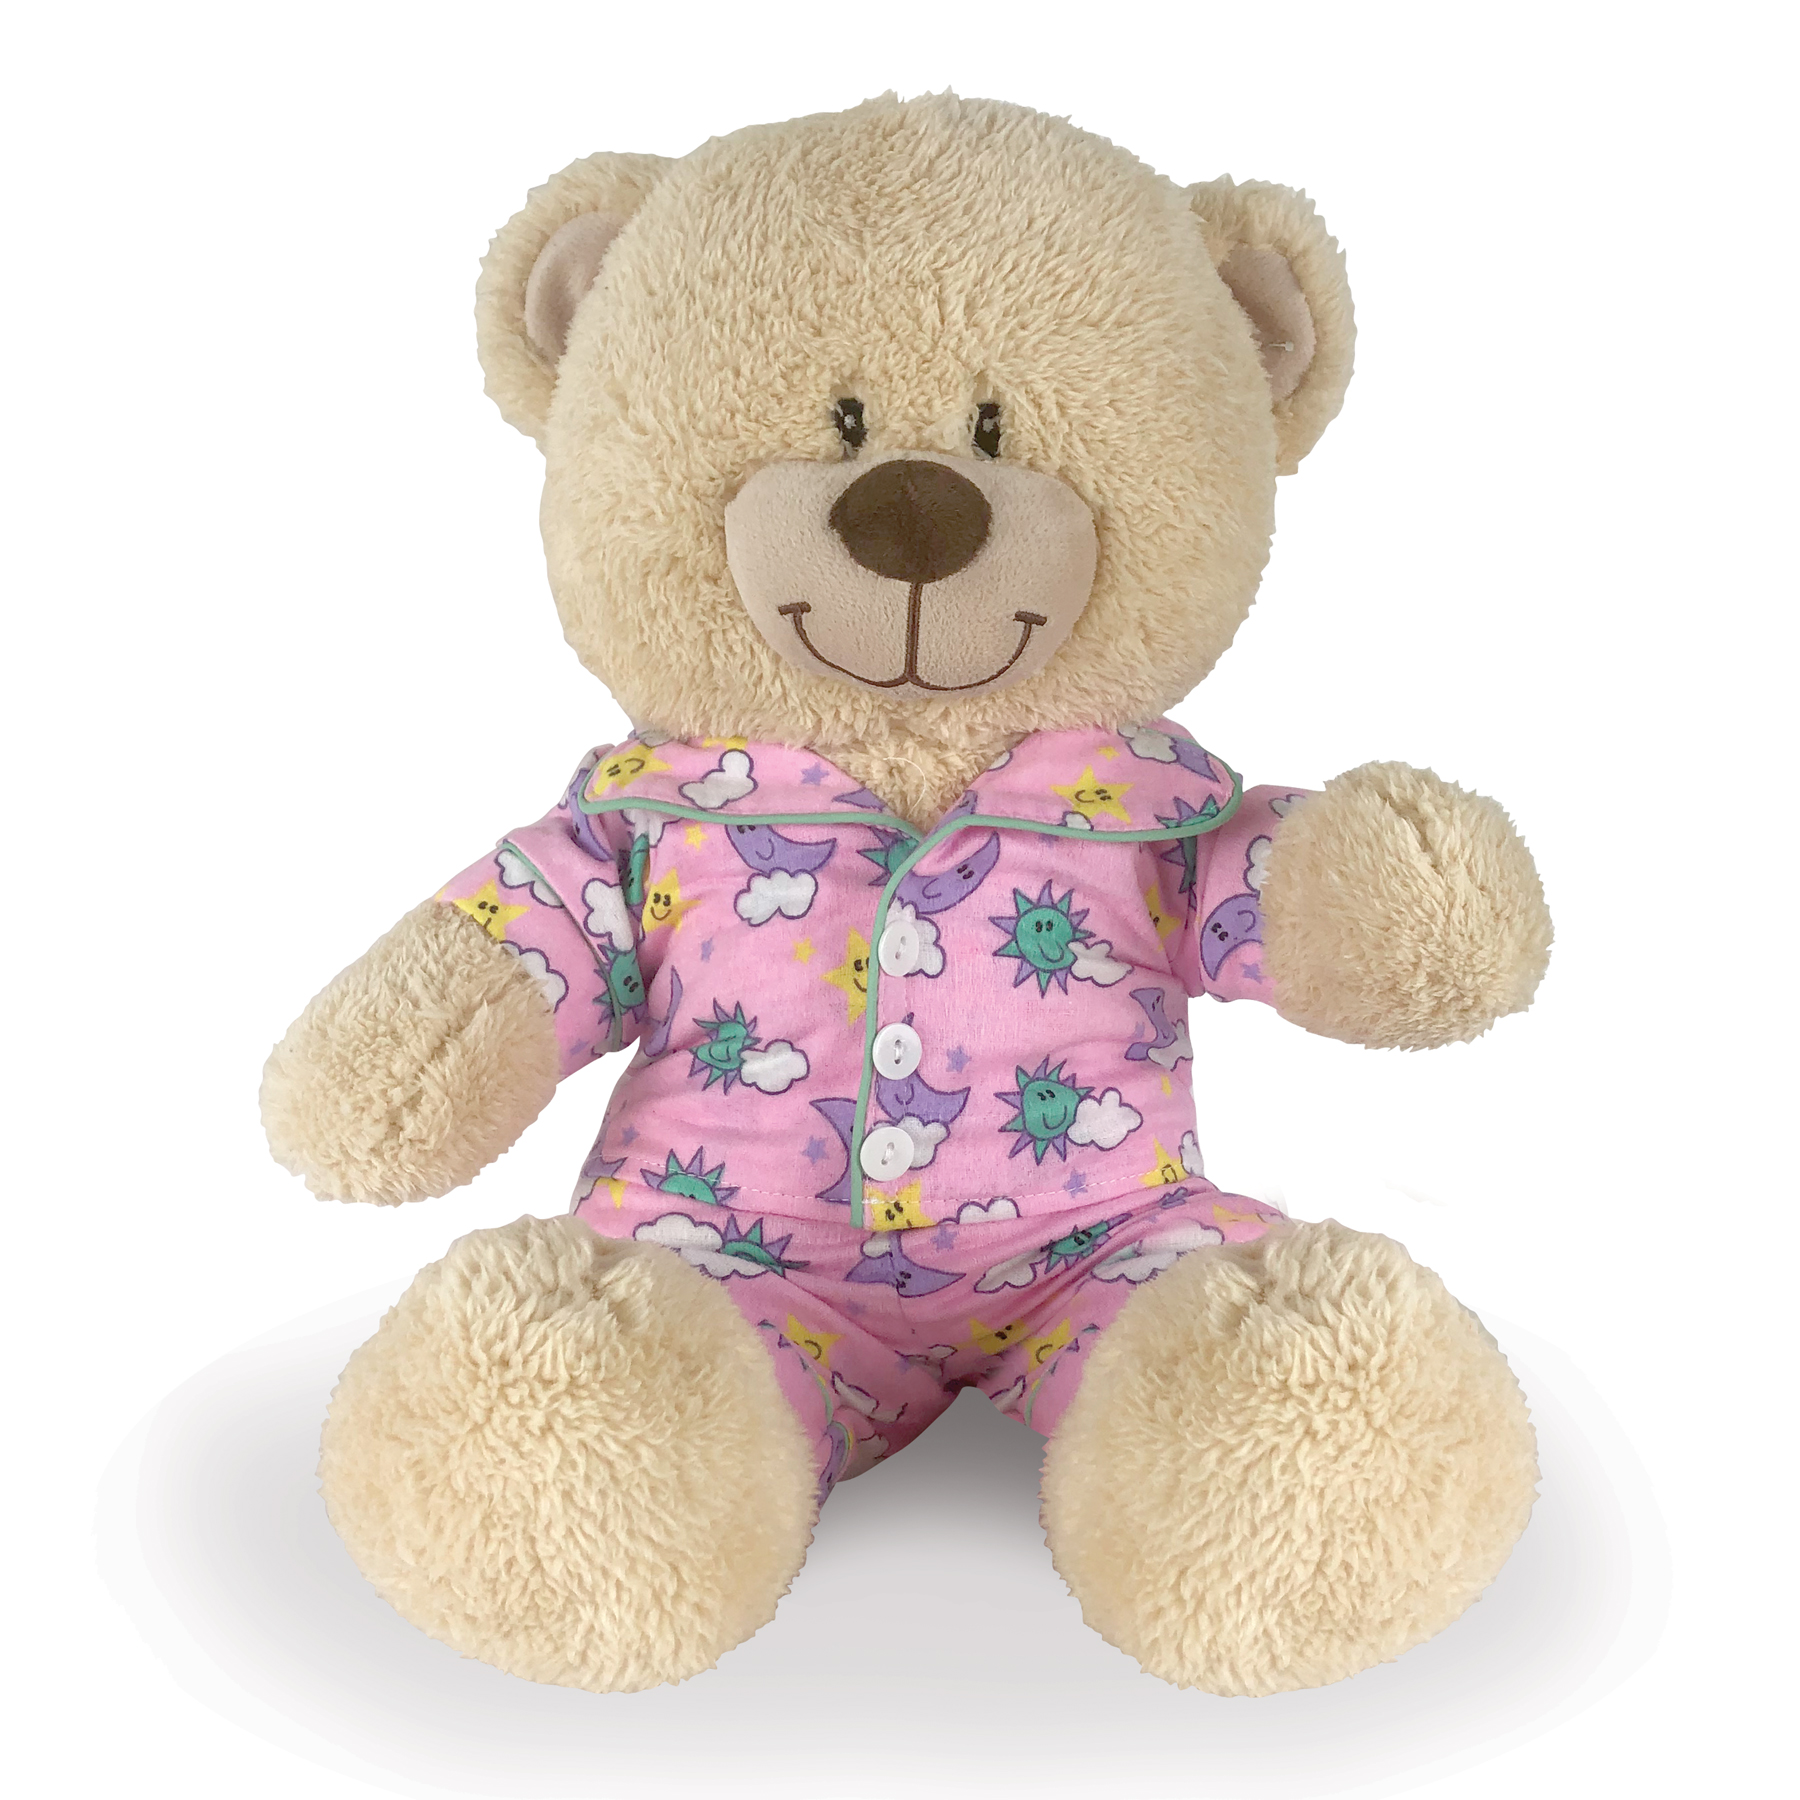 Teddy Bear Outfits | Pink Flannel PJ's For Teddy Bear